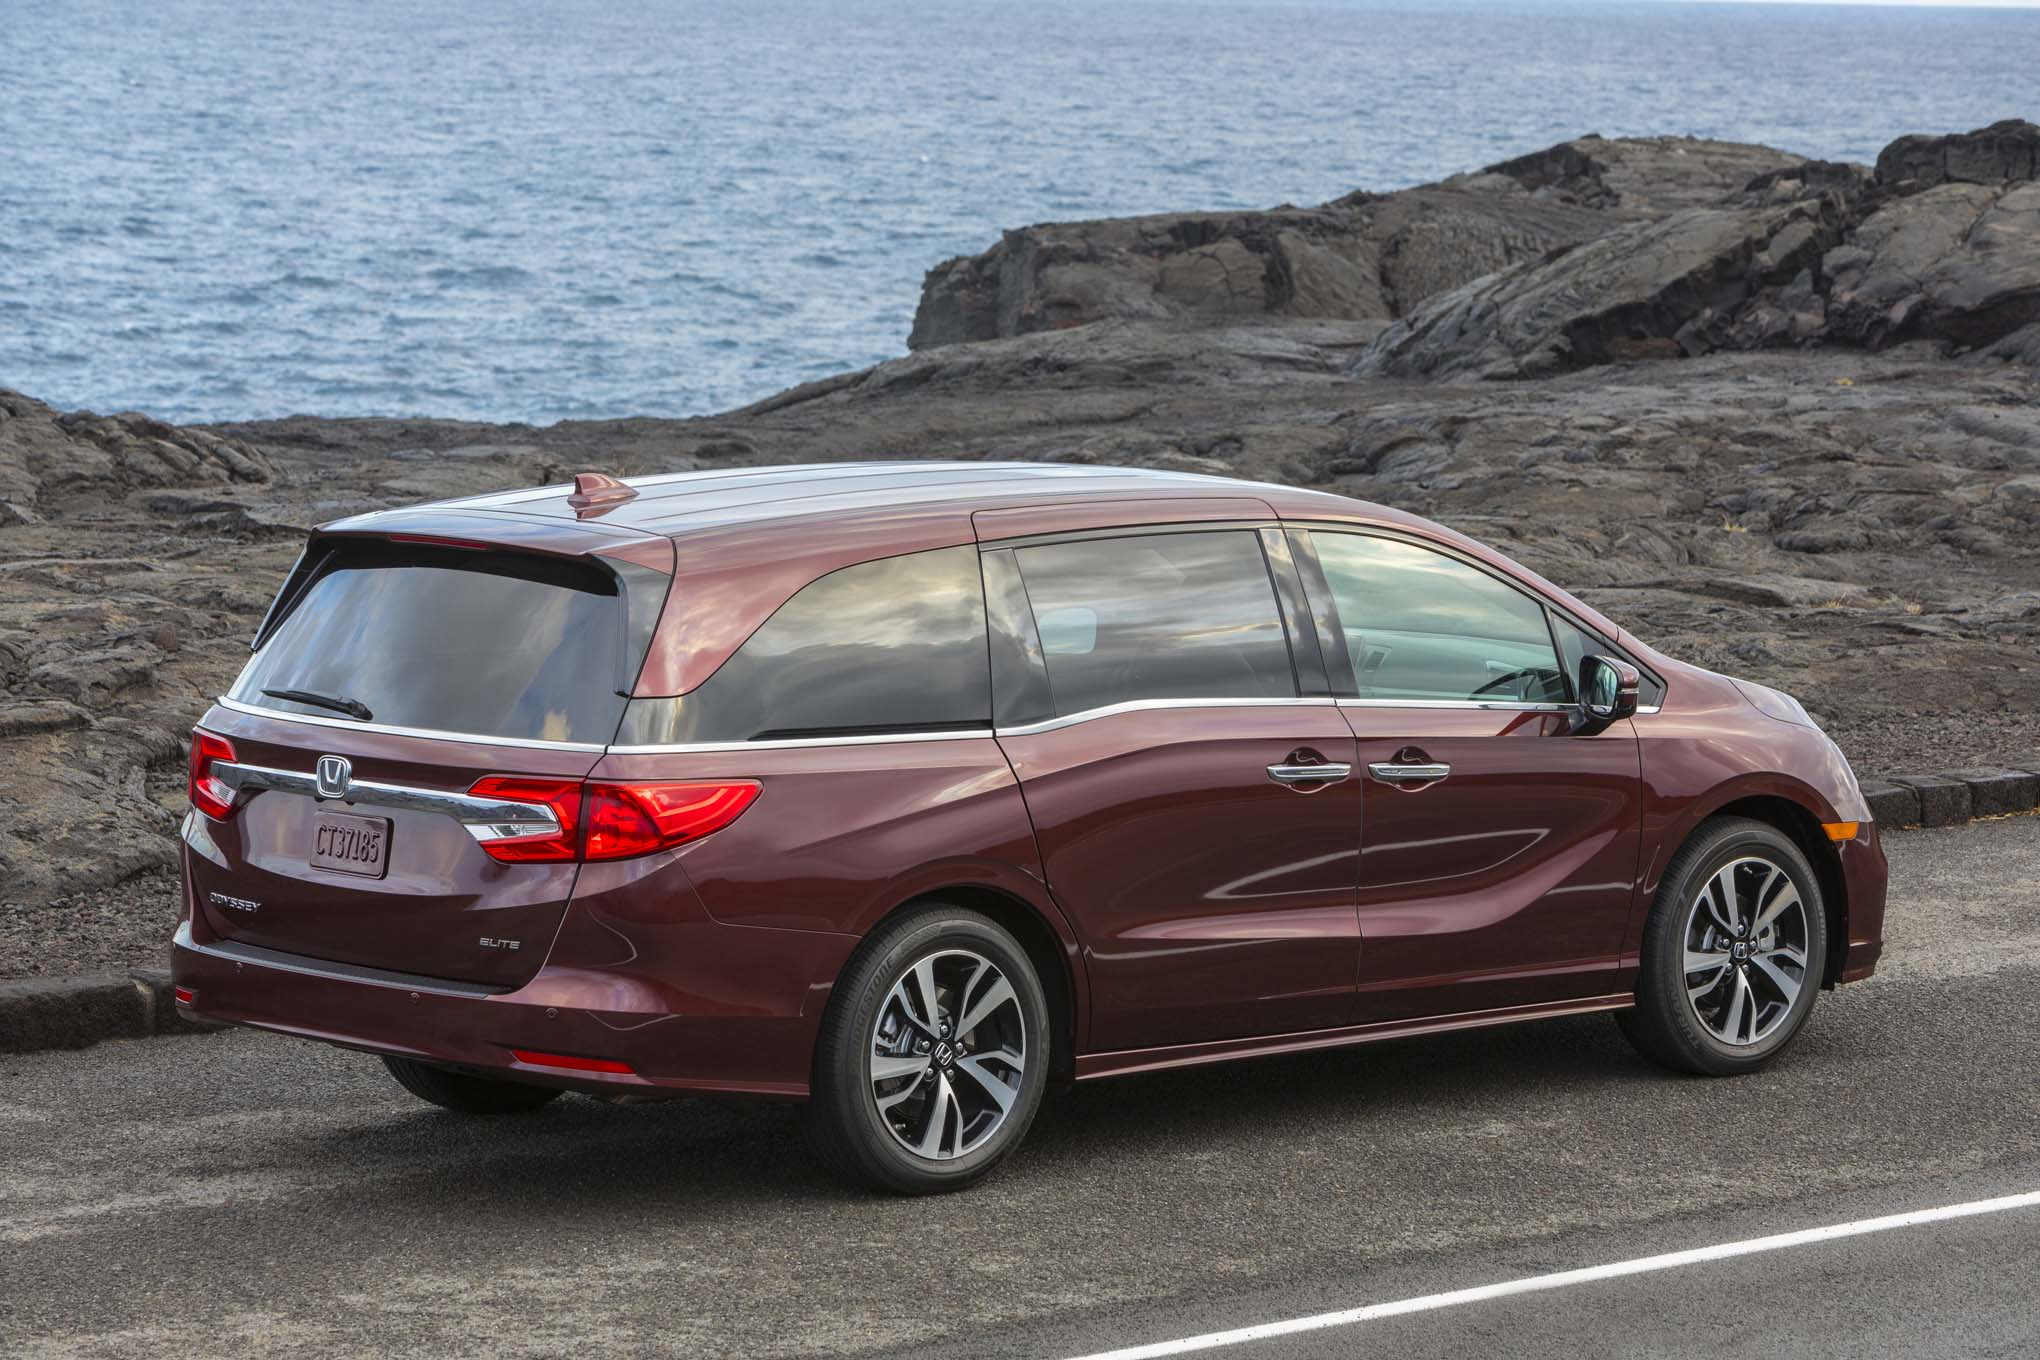 2018 Honda Odyssey Rear Three Quarter 04